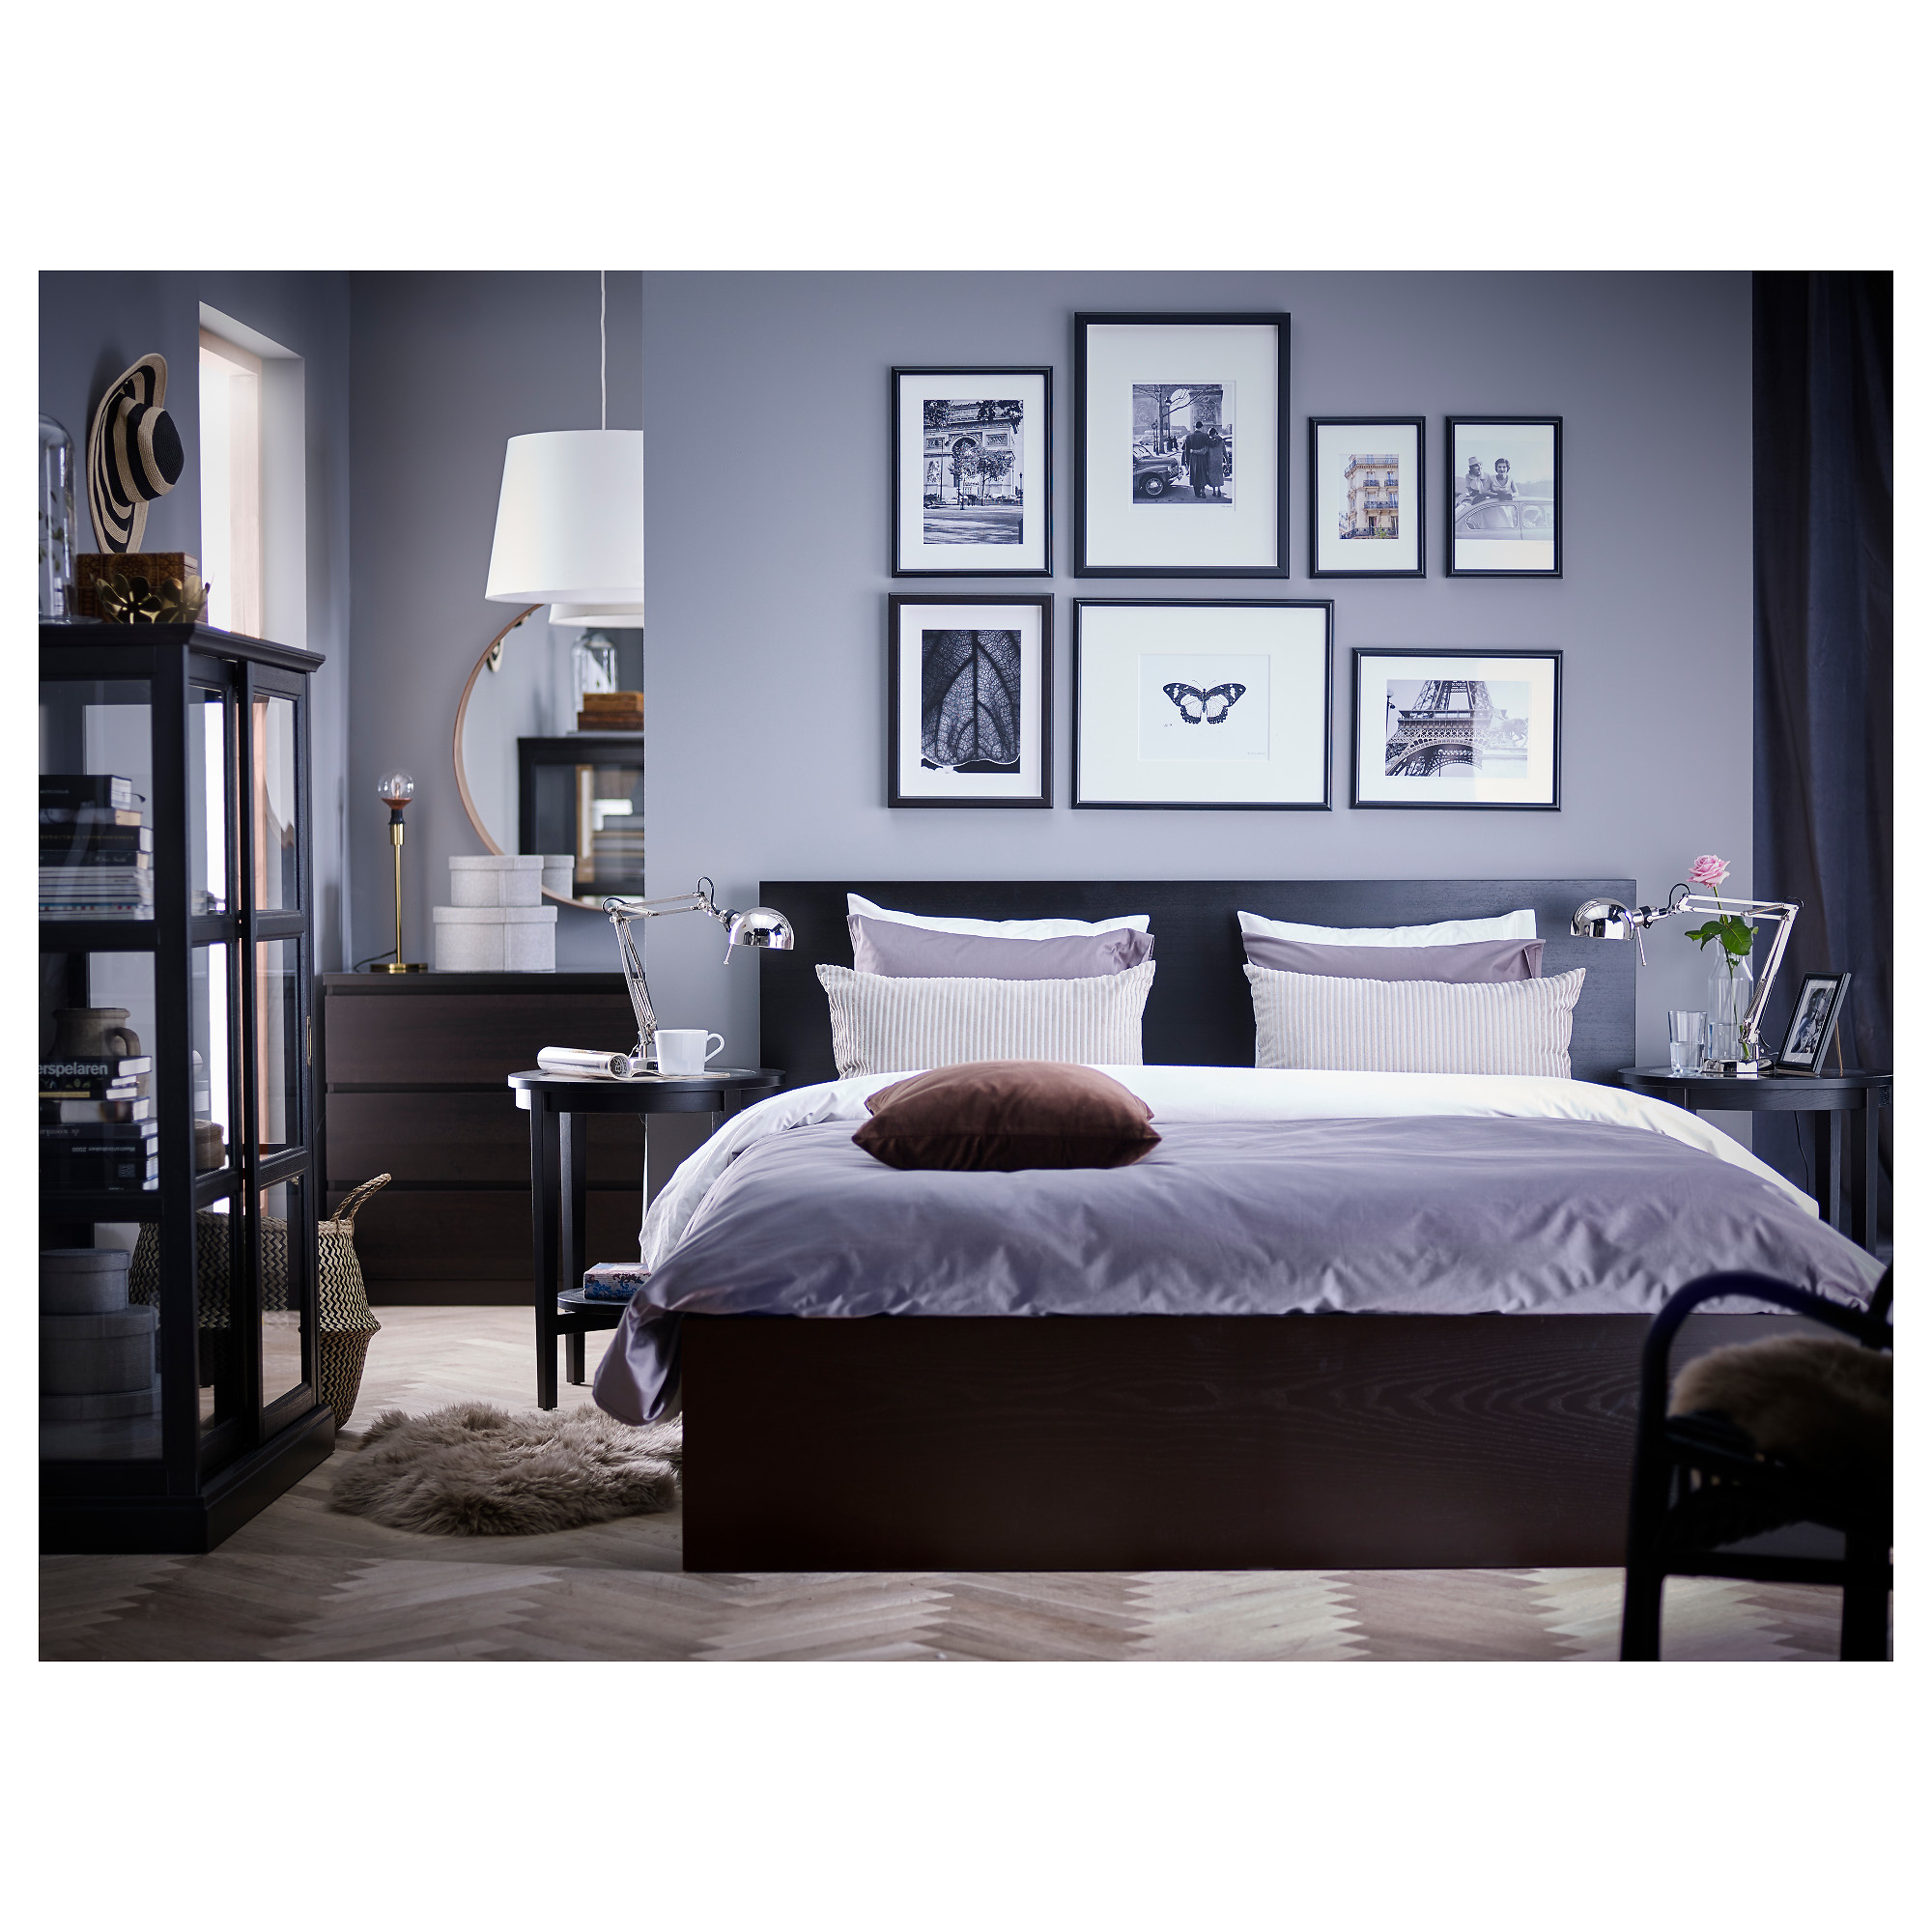 malm bed frame, high - queen, - - ikea, Hause deko